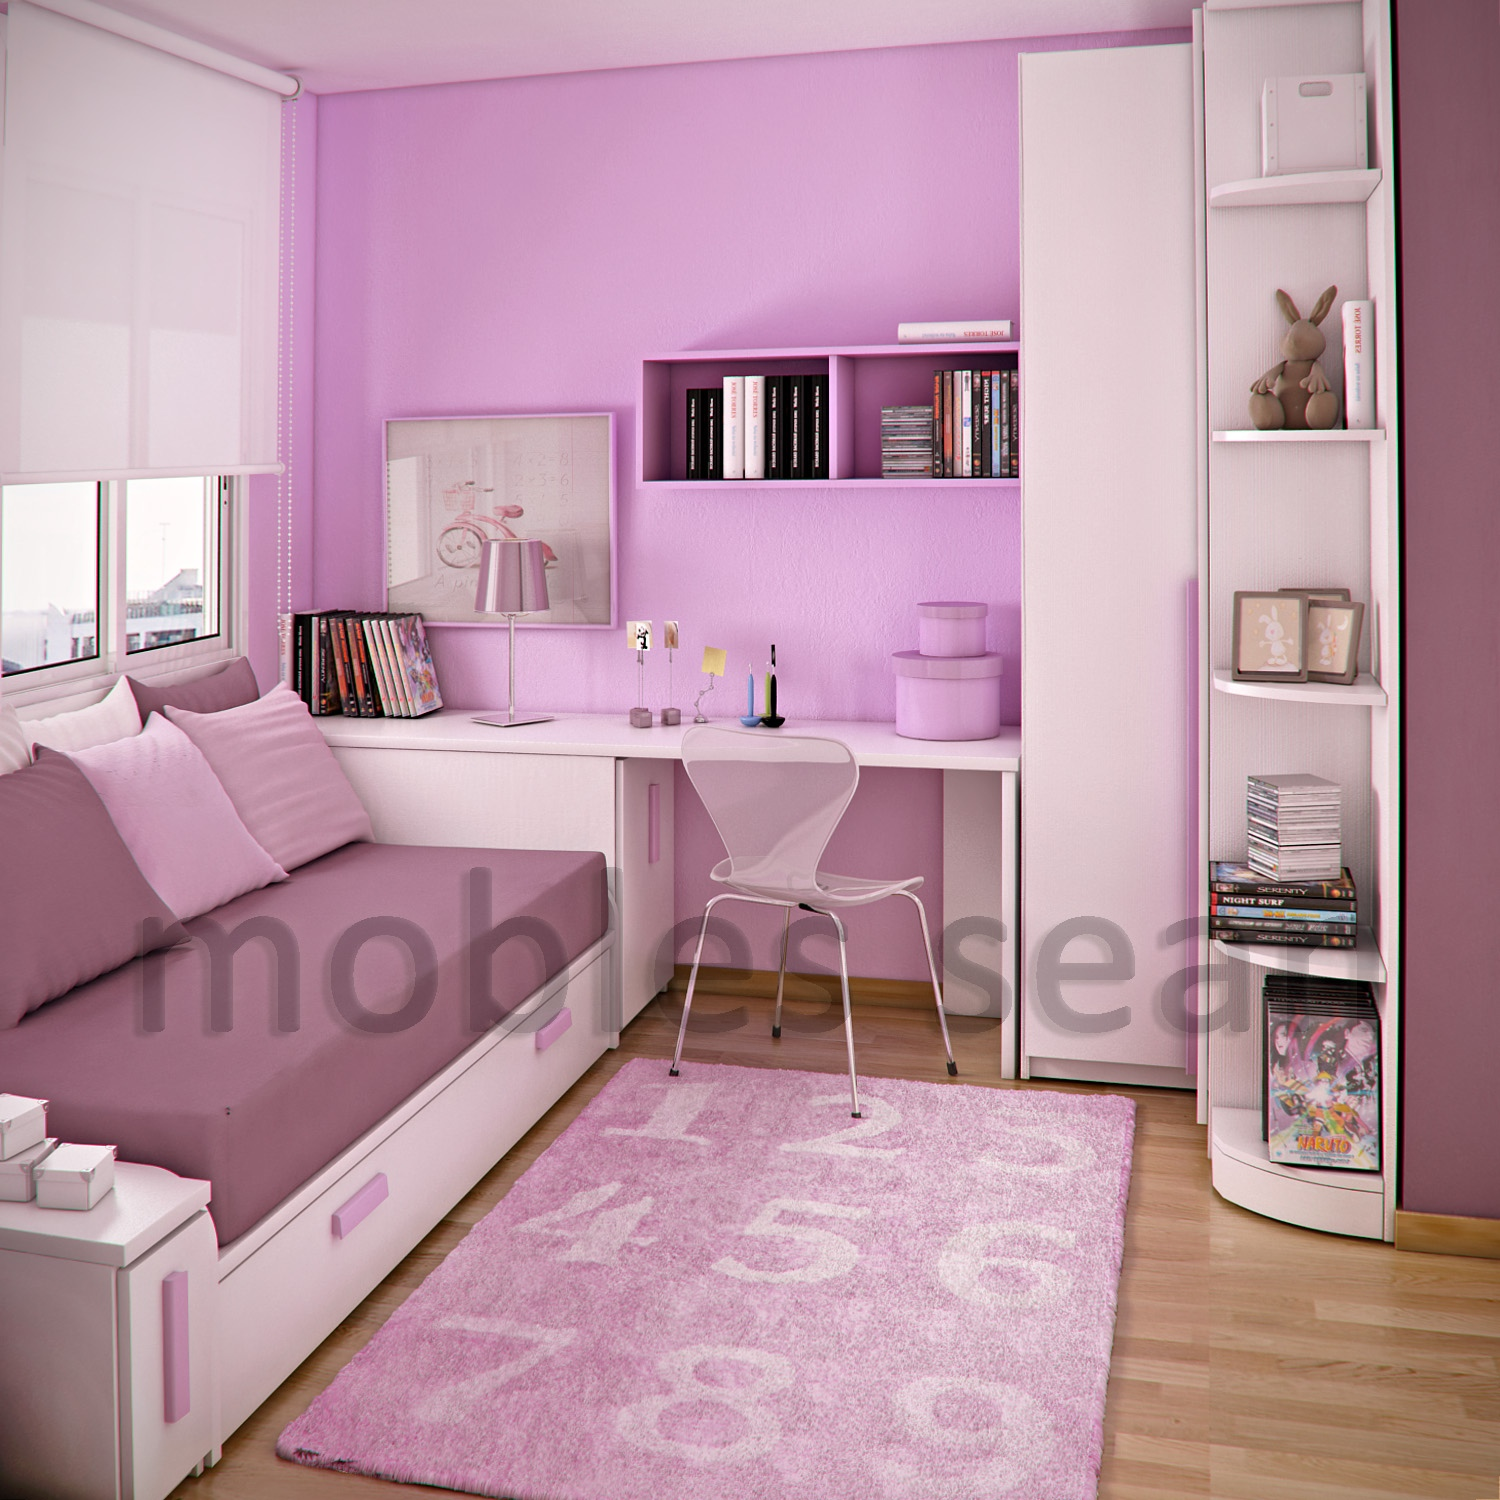 Space-Saving Designs for Small Kids Rooms on Girls Bedroom Ideas For Very Small Rooms  id=34989